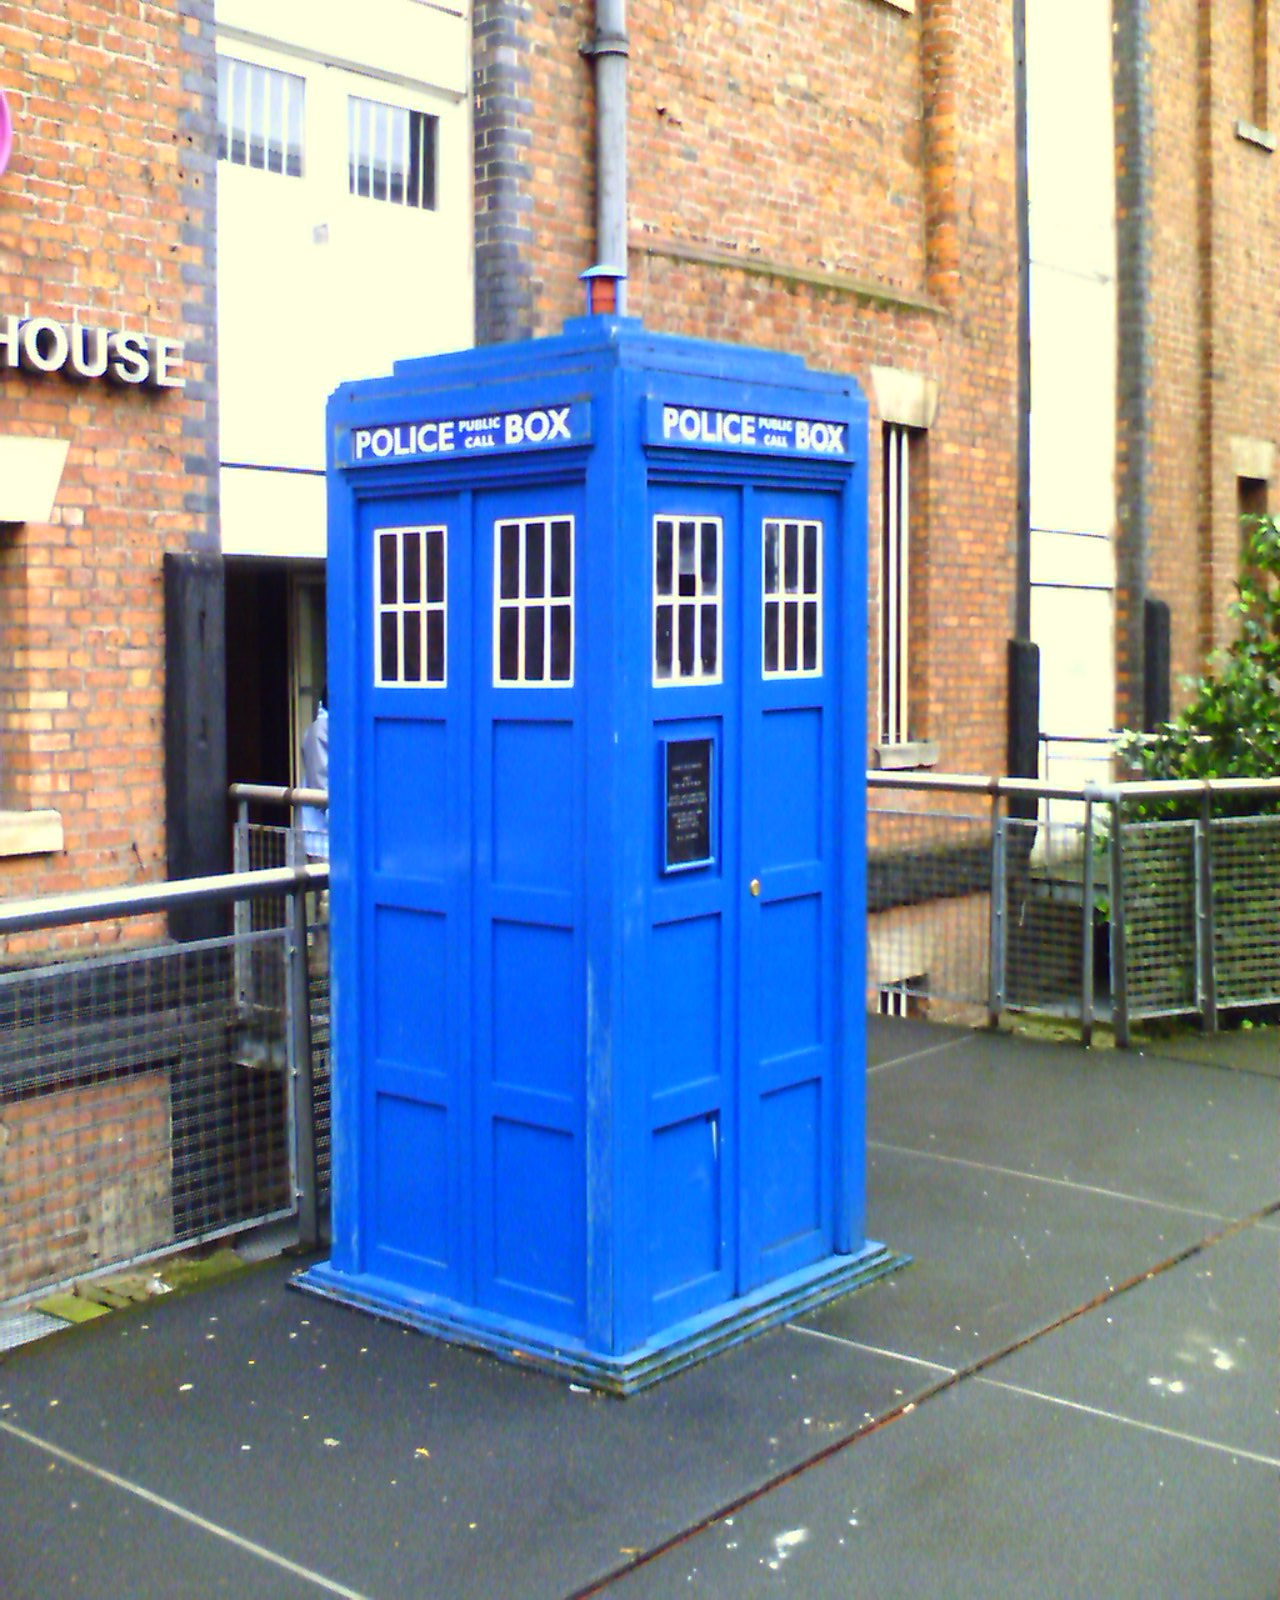 Dr Who's Home